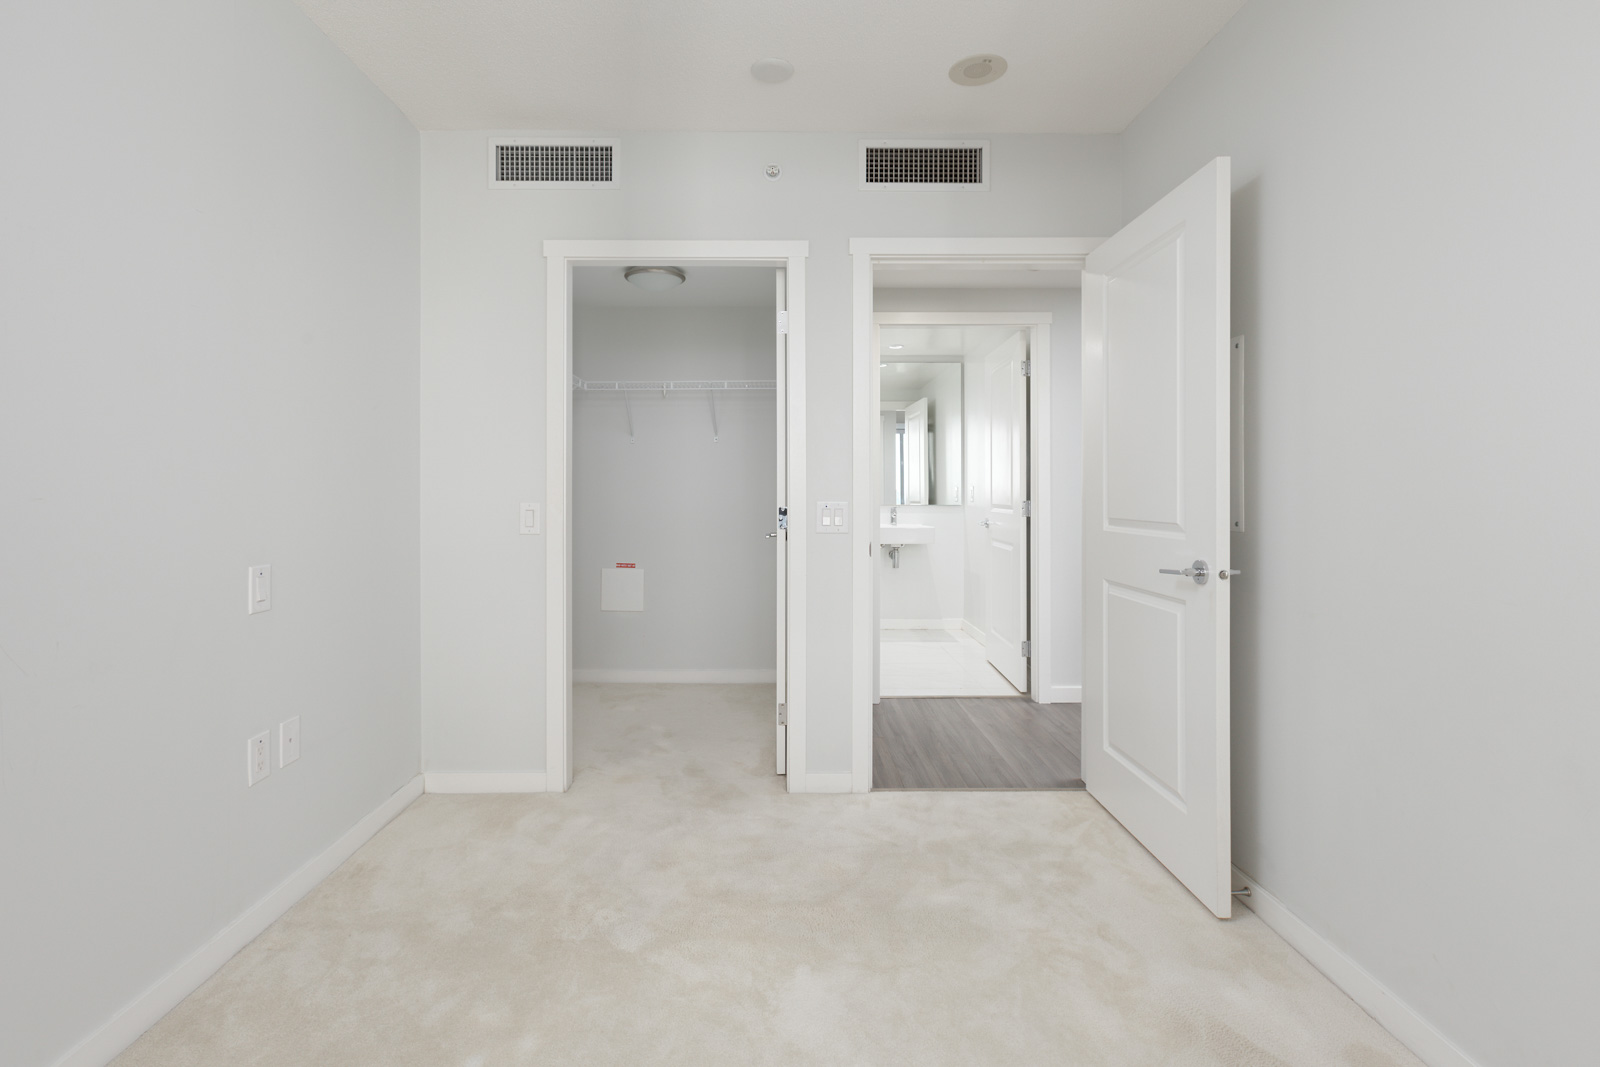 view from the inside of the bedroom with door and closet